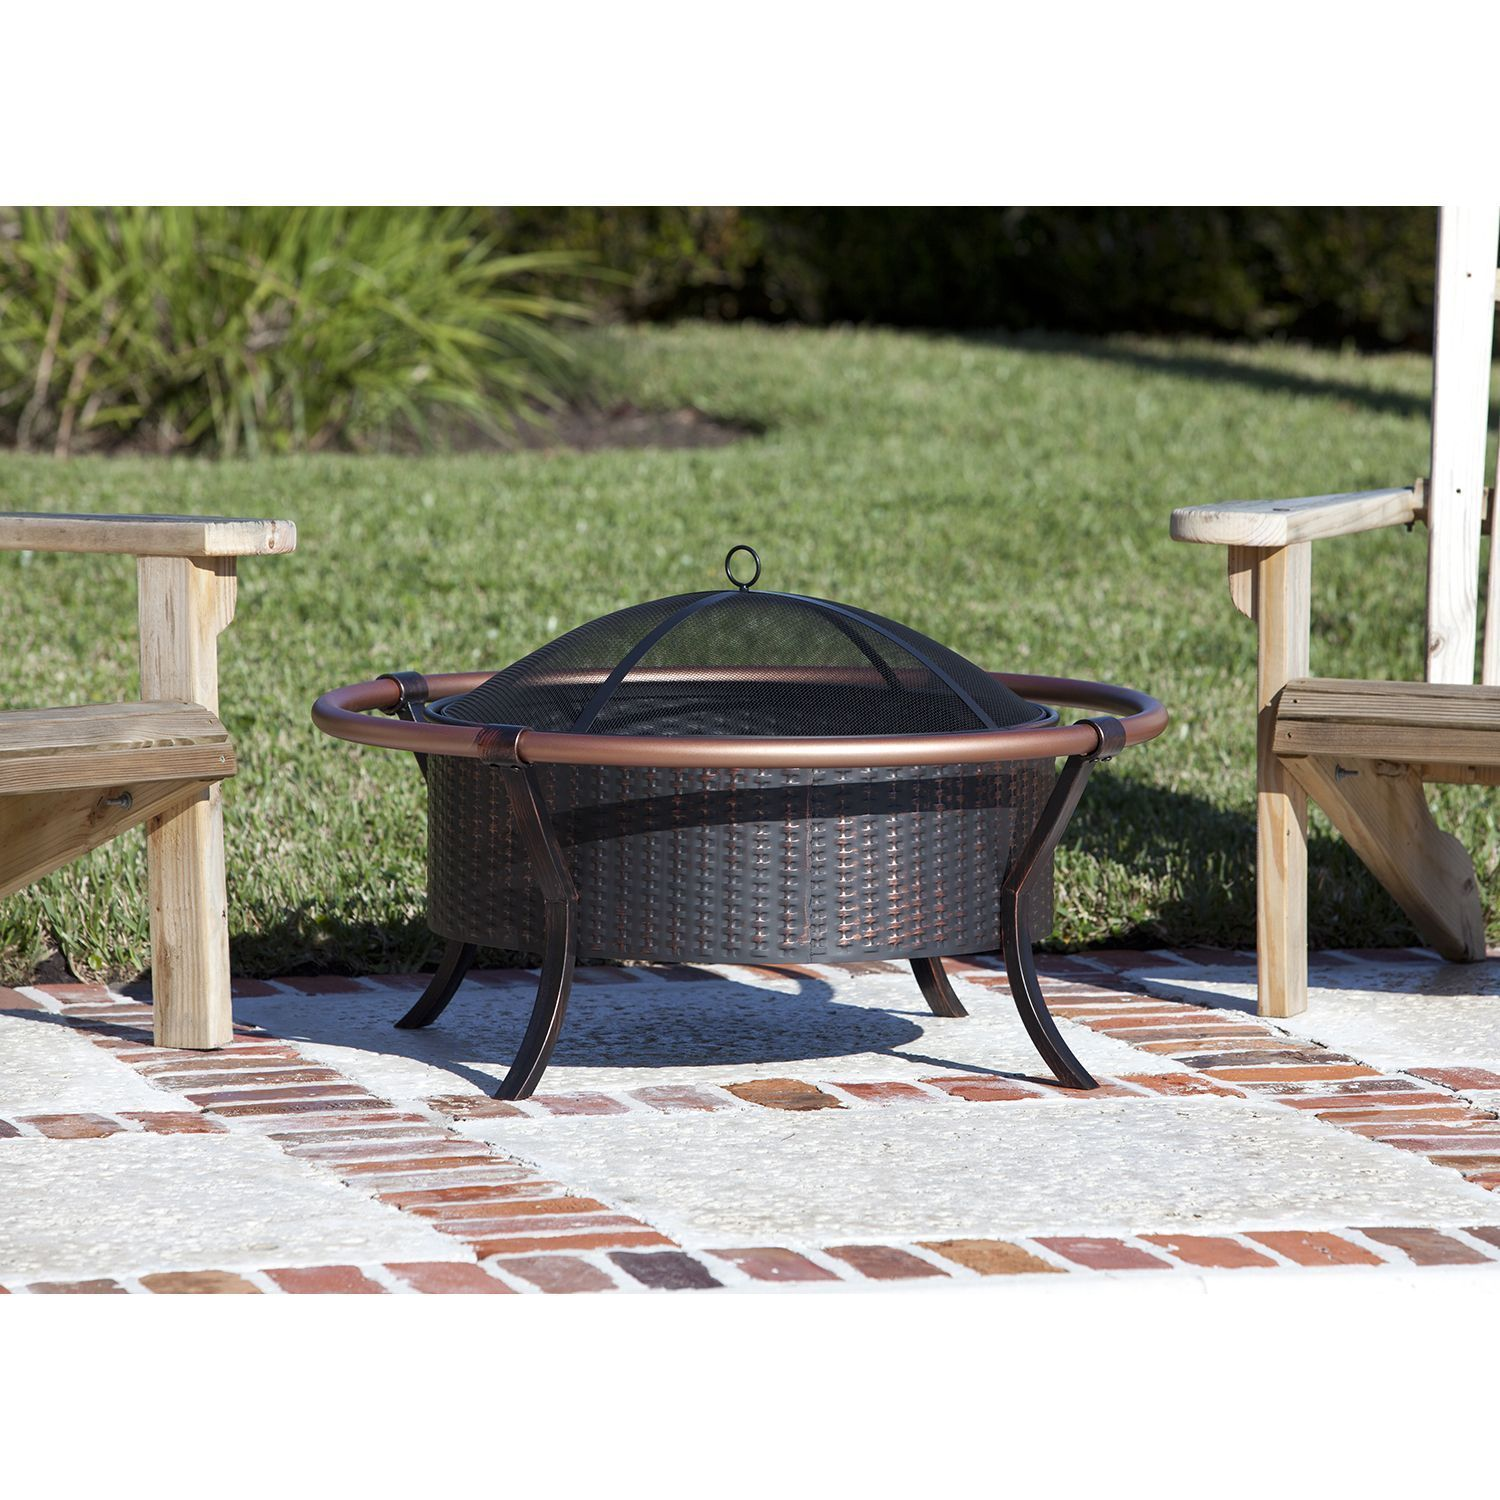 backyard fire pit chairs collapsable high chair outdoor patio furniture fireplace copper wood